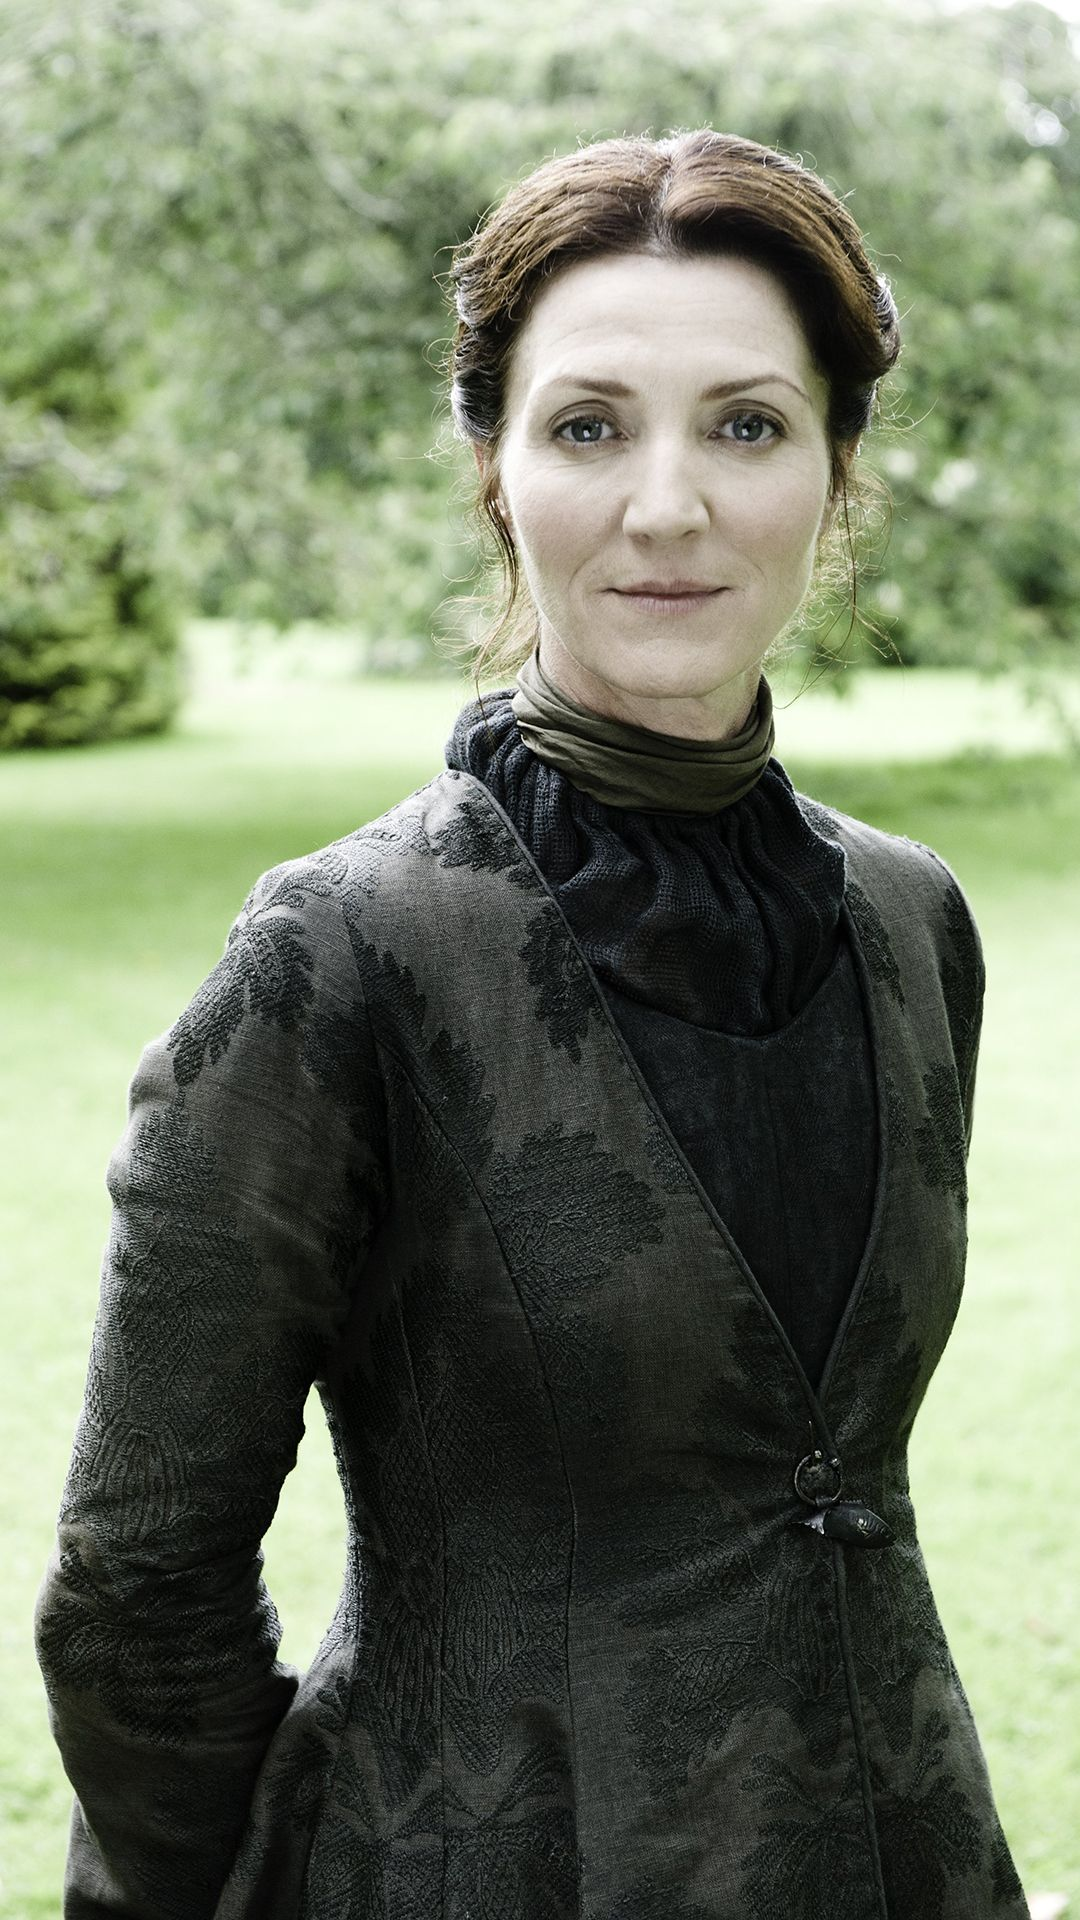 catelyn stark game of thrones costumes pinterest. Black Bedroom Furniture Sets. Home Design Ideas